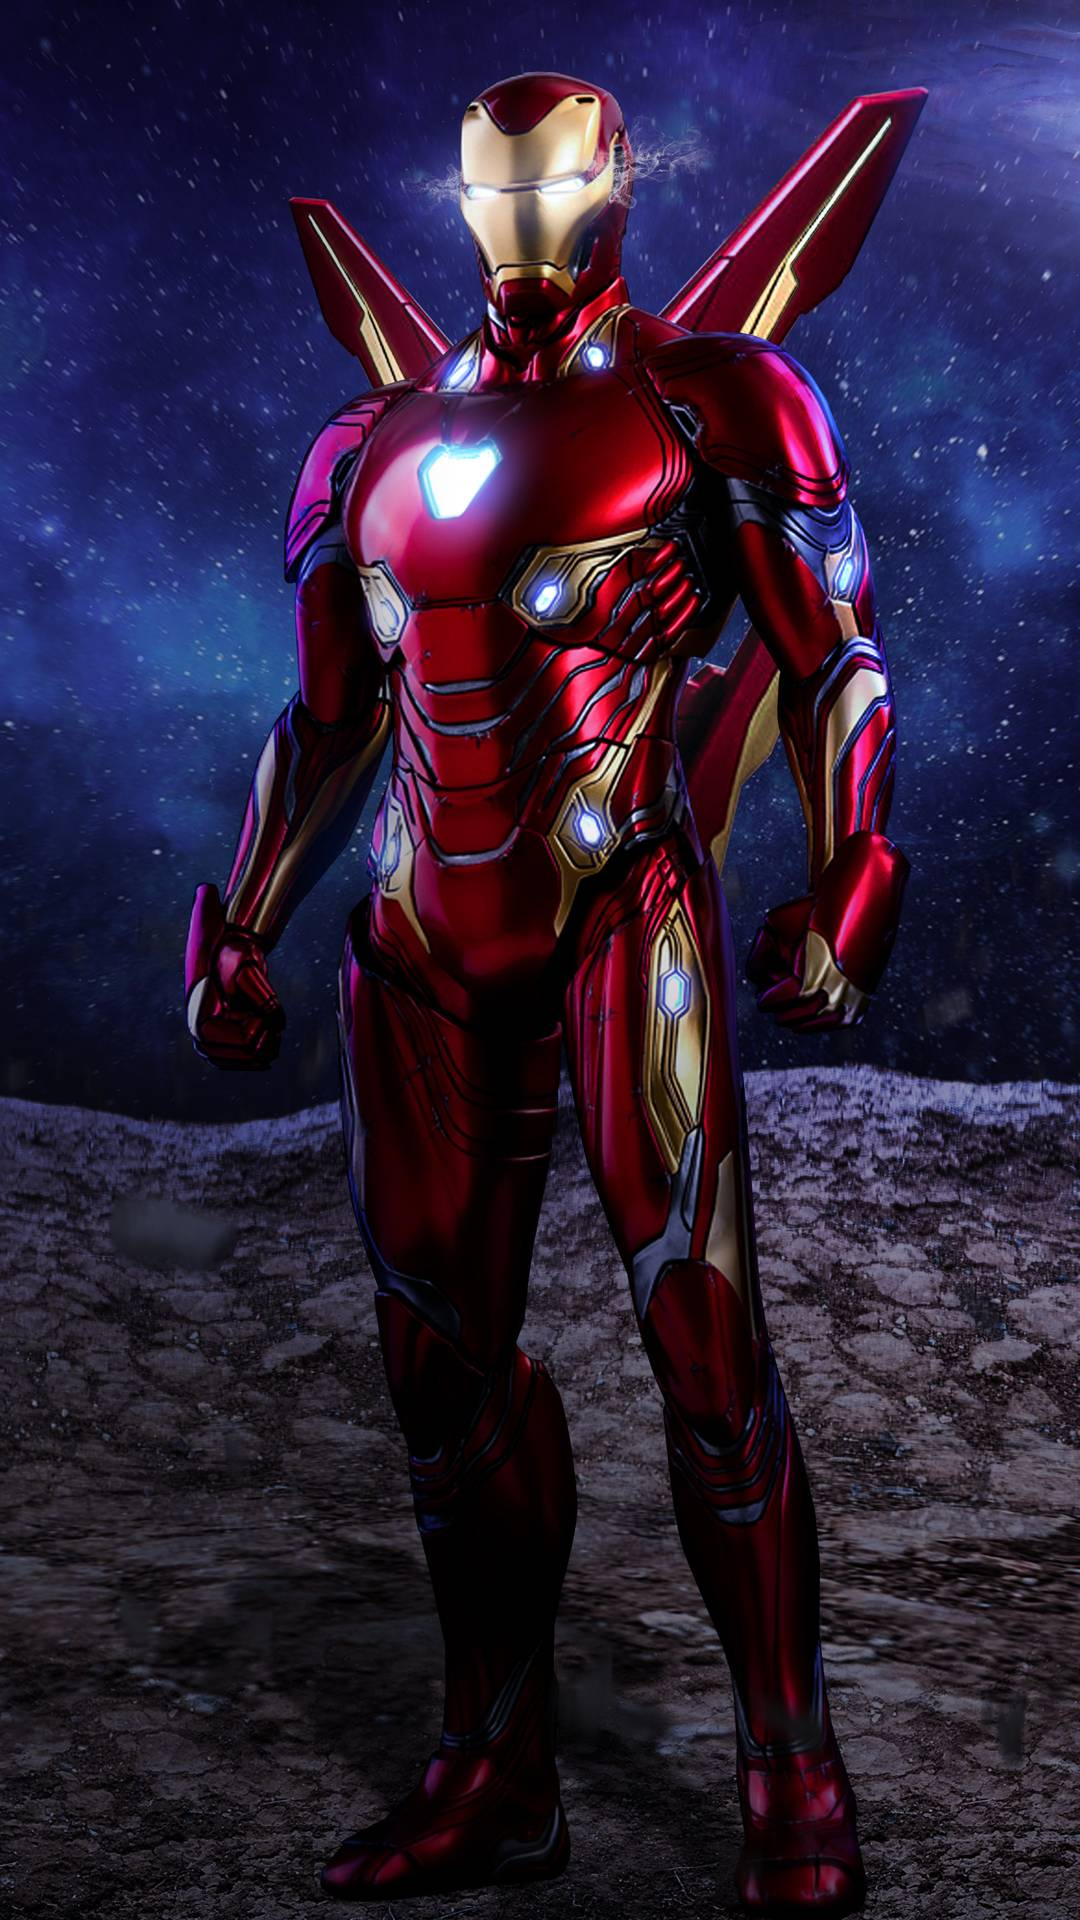 Iron Man Red Armor Mark 50 iPhone Wallpaper